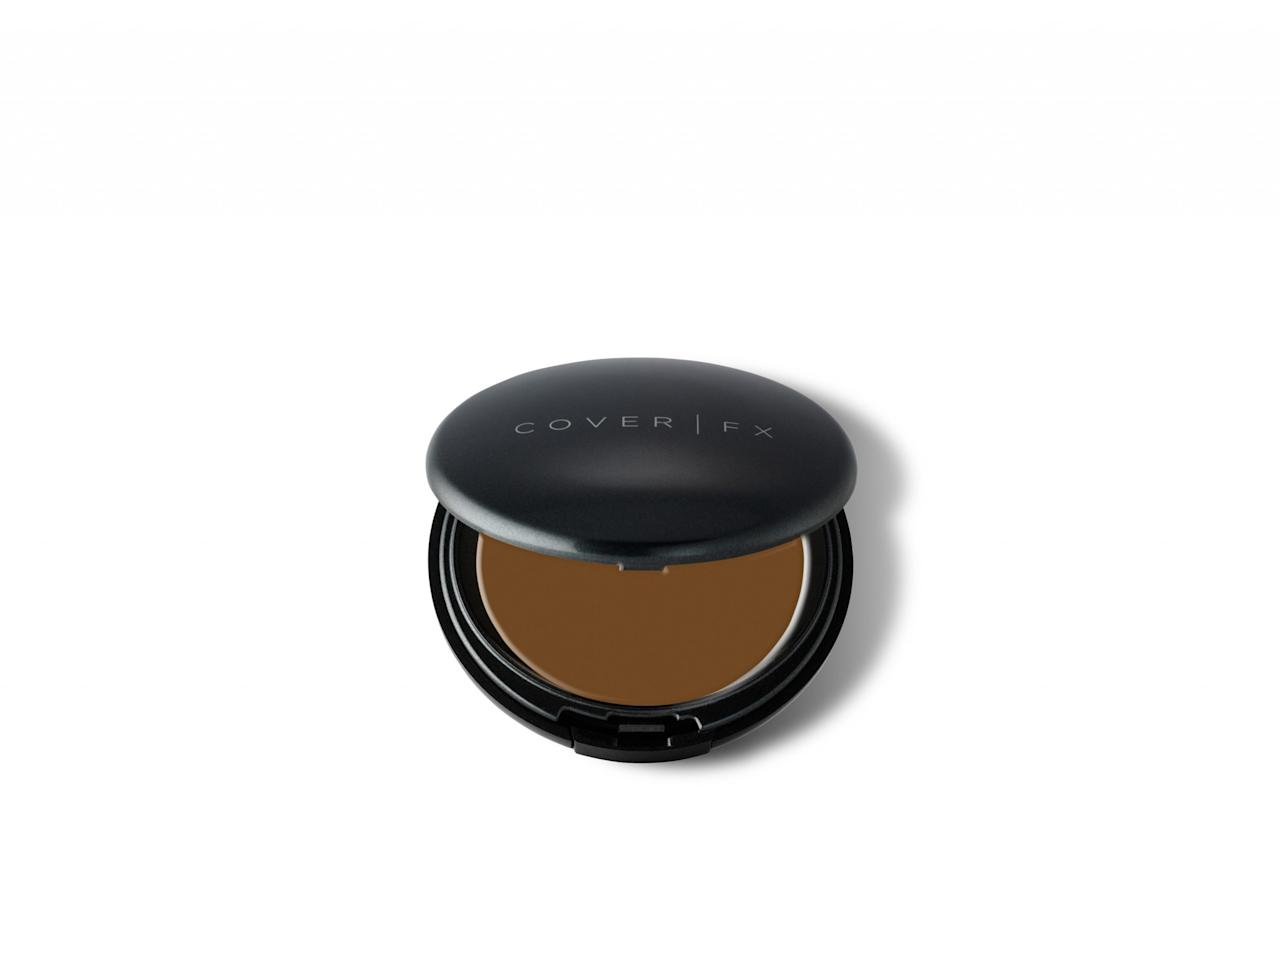 """<p>Our skin tends to get drier as we go further into the colder months, so it is a wise decision to go for a foundation that is a little heavier in texture. This cream-based pick perfectly evens out complexions with a whopping, wait for it … 40 shades to choose from! Once you find a hue you love, you will be equally enthused and impressed at how well the formula also balance out your undertones. The end result is pure radiance that you will be obsessed with. $42, <a rel=""""nofollow"""" href=""""http://www.coverfx.com/total-cover-cream-foundation.html"""">CoverFX.com</a>. </p>"""